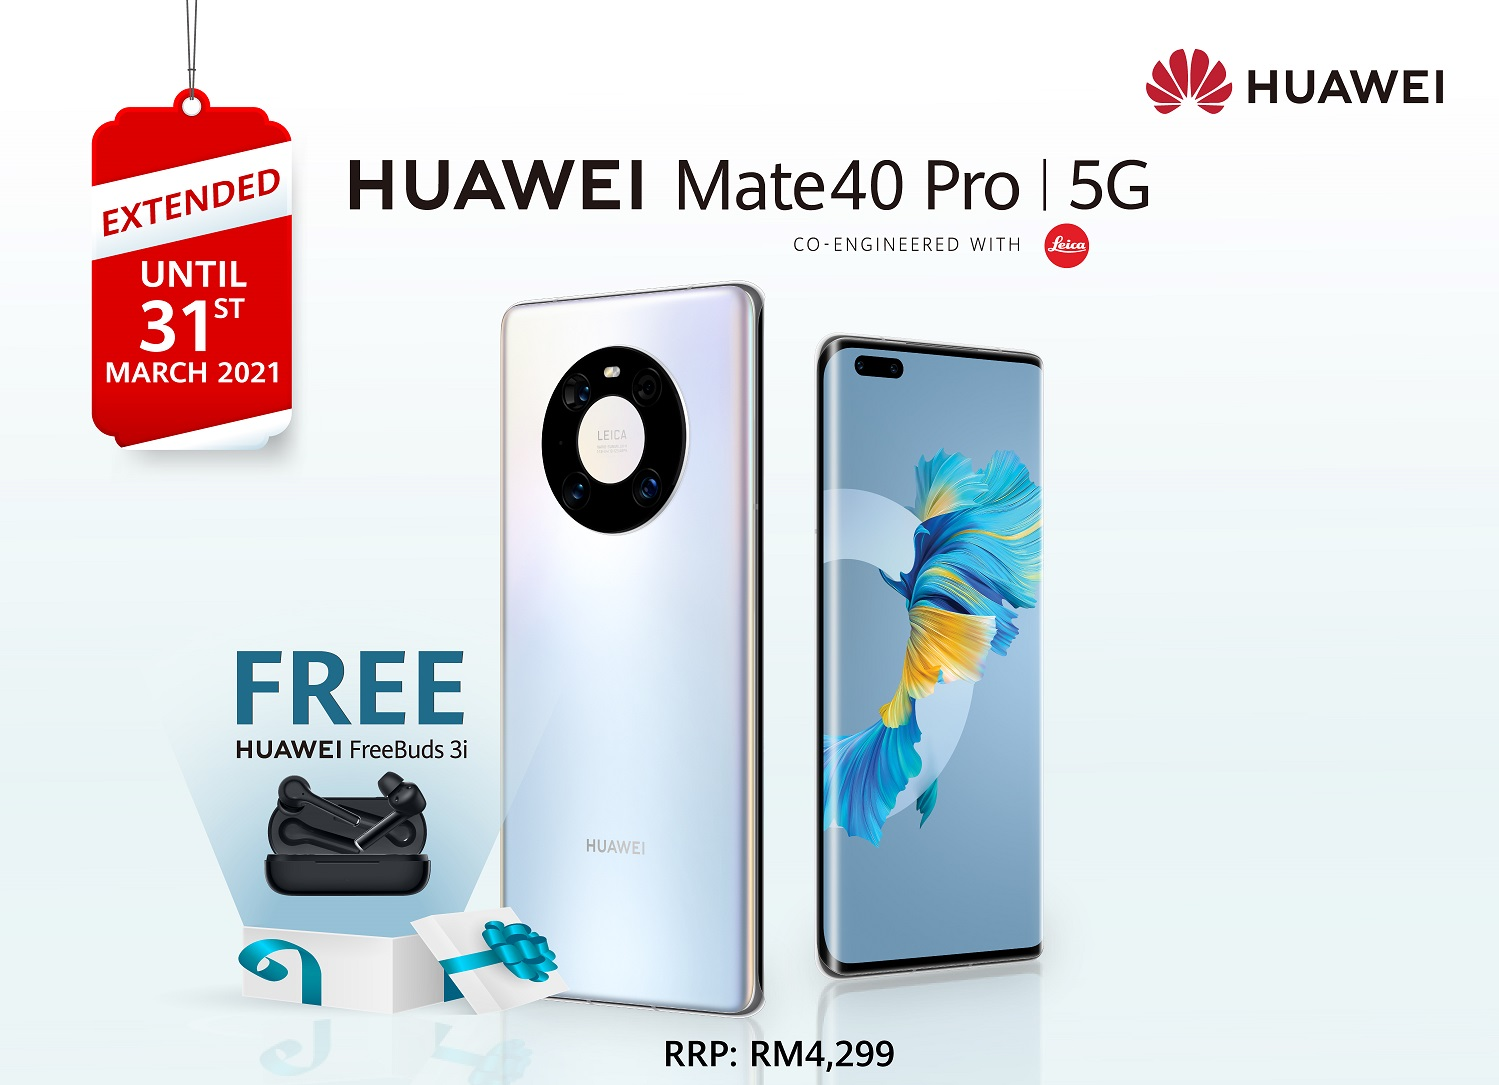 Get The HUAWEI Freebuds 3i For FREE With Every Purchase Of HUAWEI Mate40 Pro